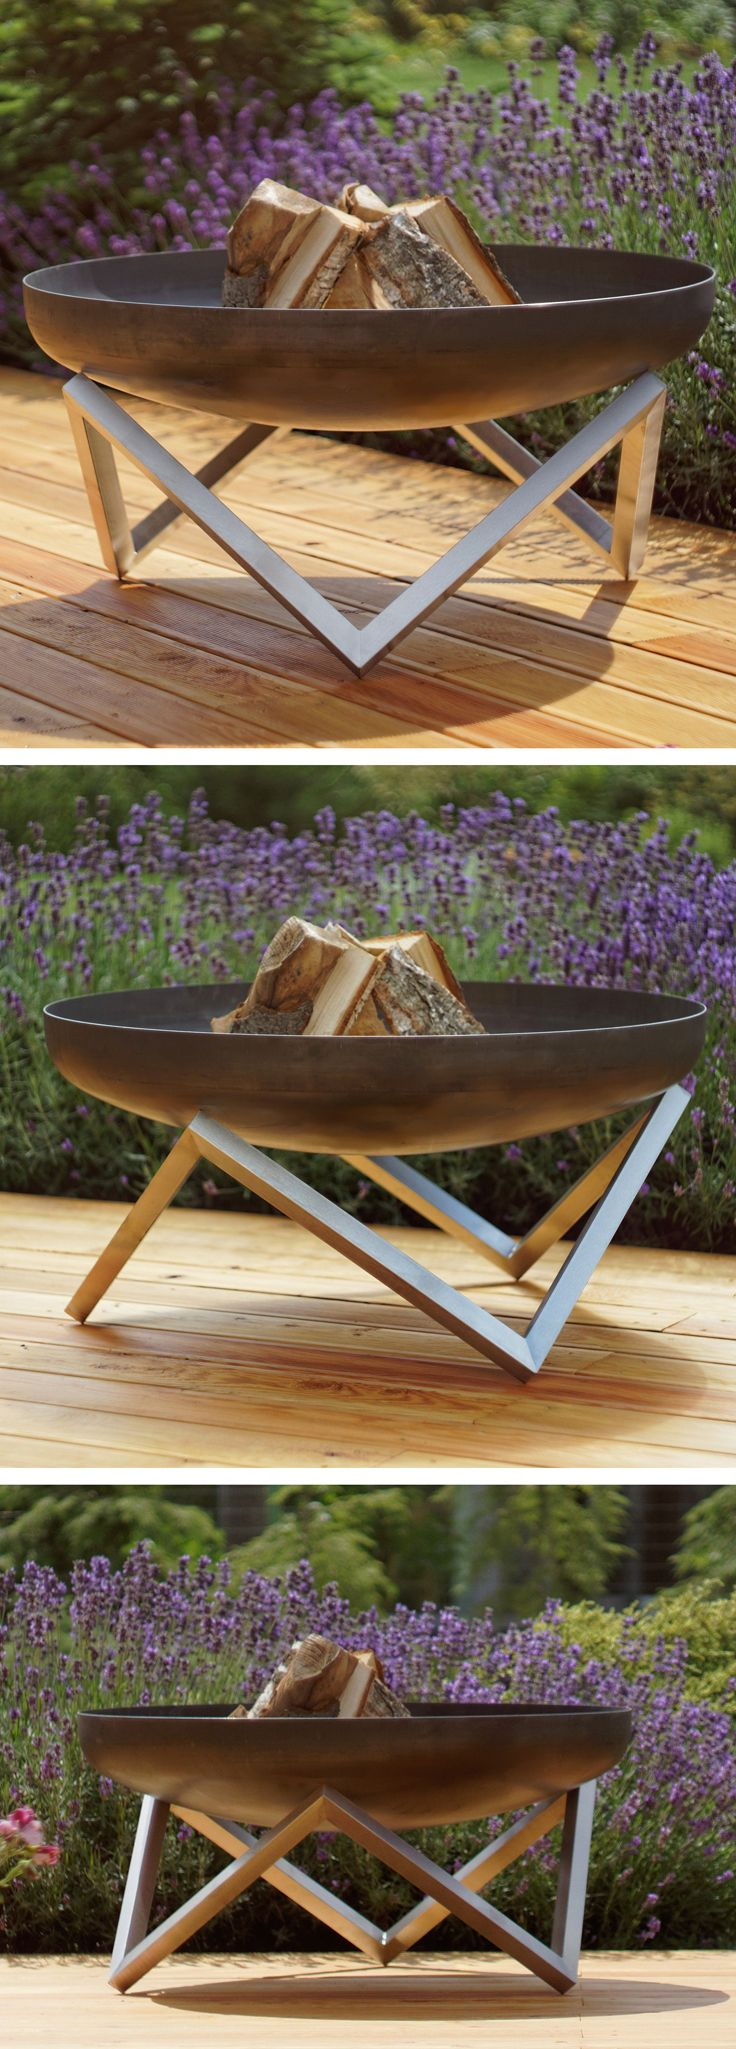 the memel fire pit by curonian deco modern and unique fire pits planters and outdoor furniture for organic integration into contemporary garden and outdoor